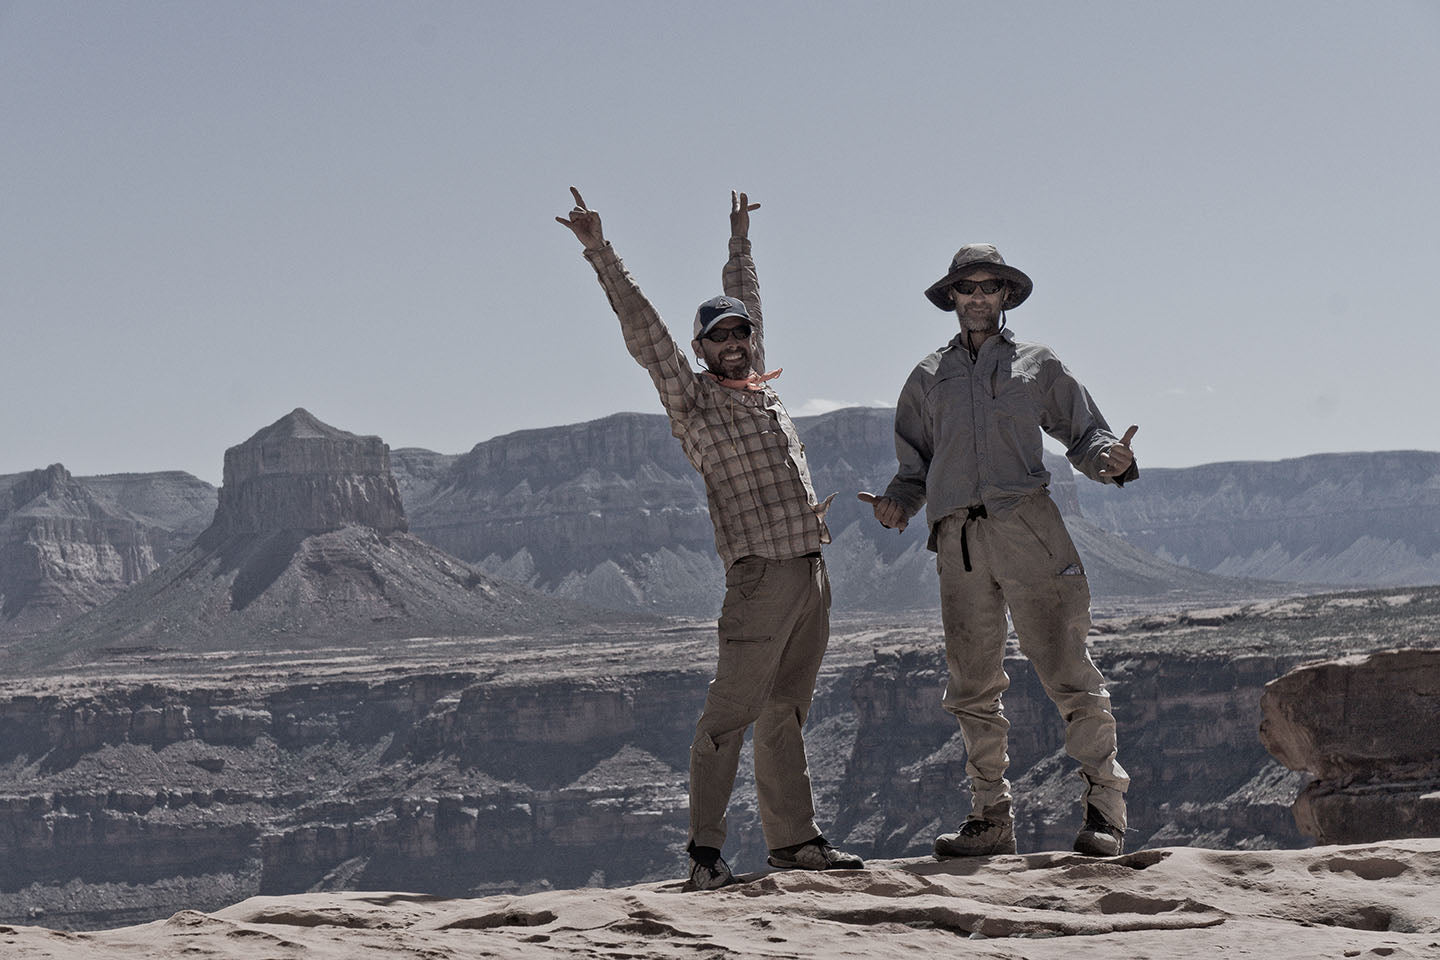 Mike St. Pierre and Clay Wadman succeeded on their section hike in part becausethey relied on Wadman's skills with maps. Theirelectronic devices–the DeLorme inReach and Mike's iPhone–were also important tools.